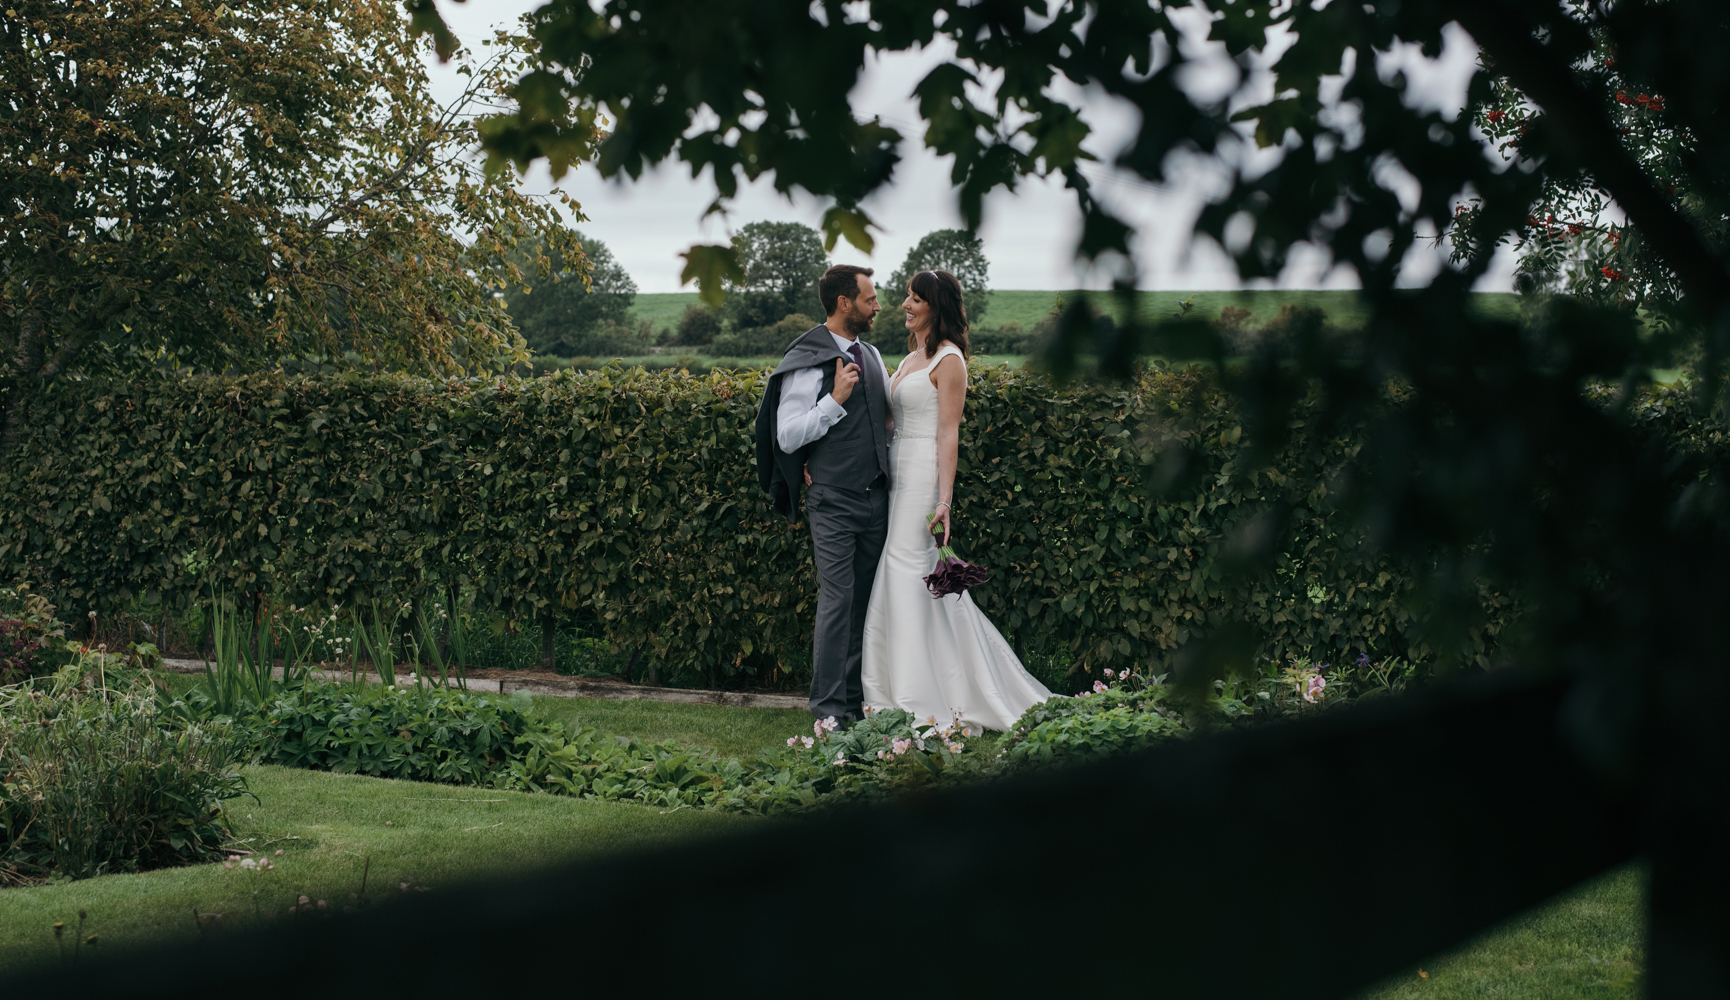 The bride and groom sharing a quiet moment in the garden